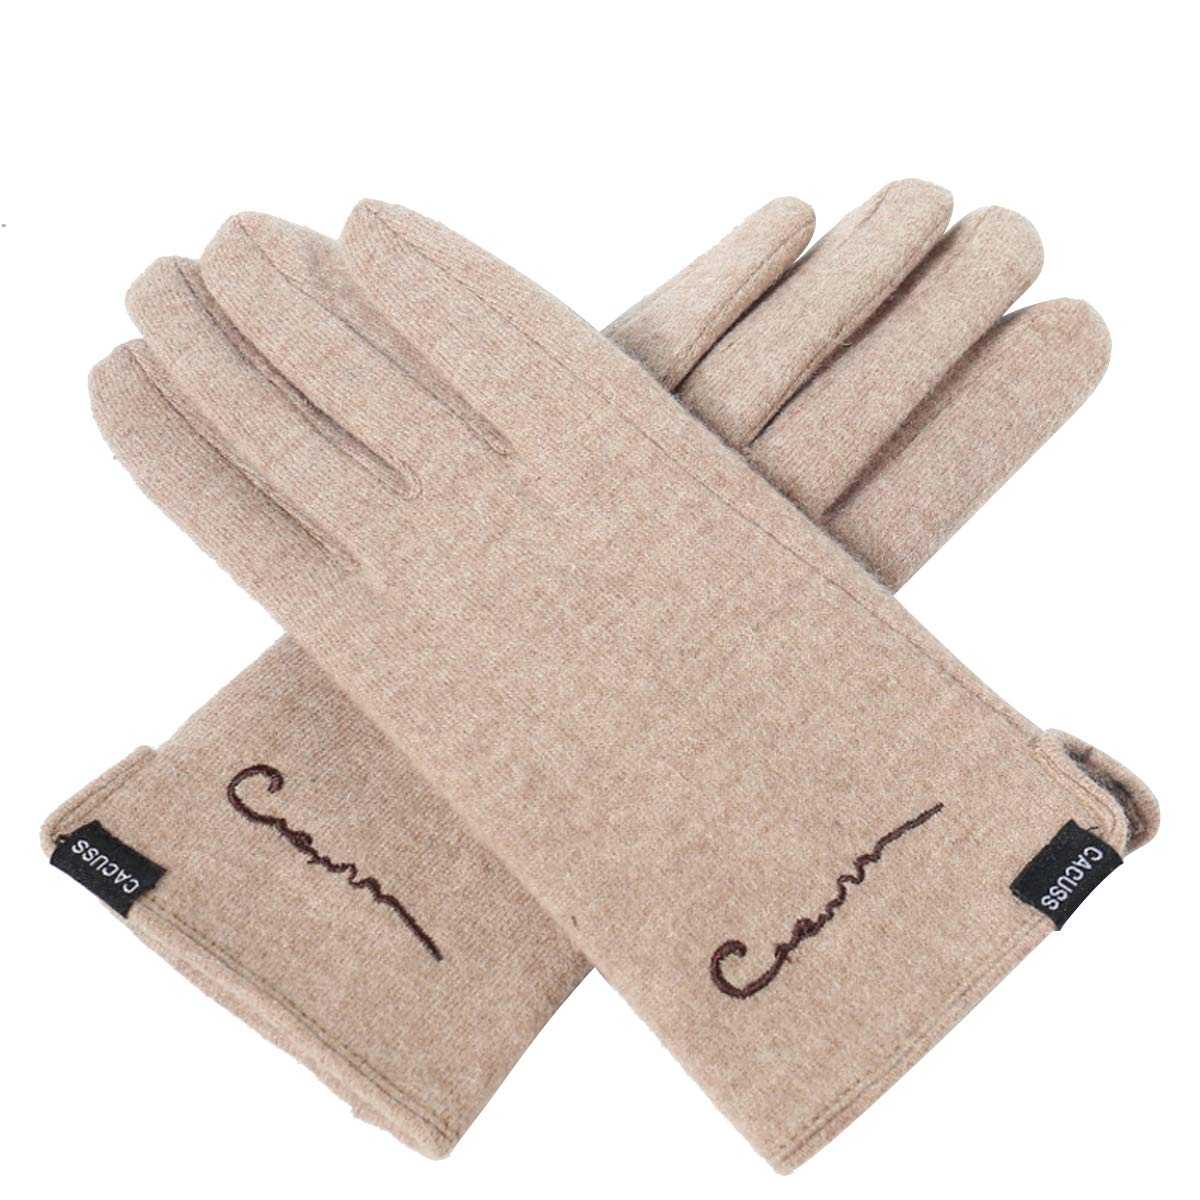 CACUSS Women's Winter Wool Knit Gloves Touchscreen Texting Finger Tips with Warm Fleece Lining (Light tan)